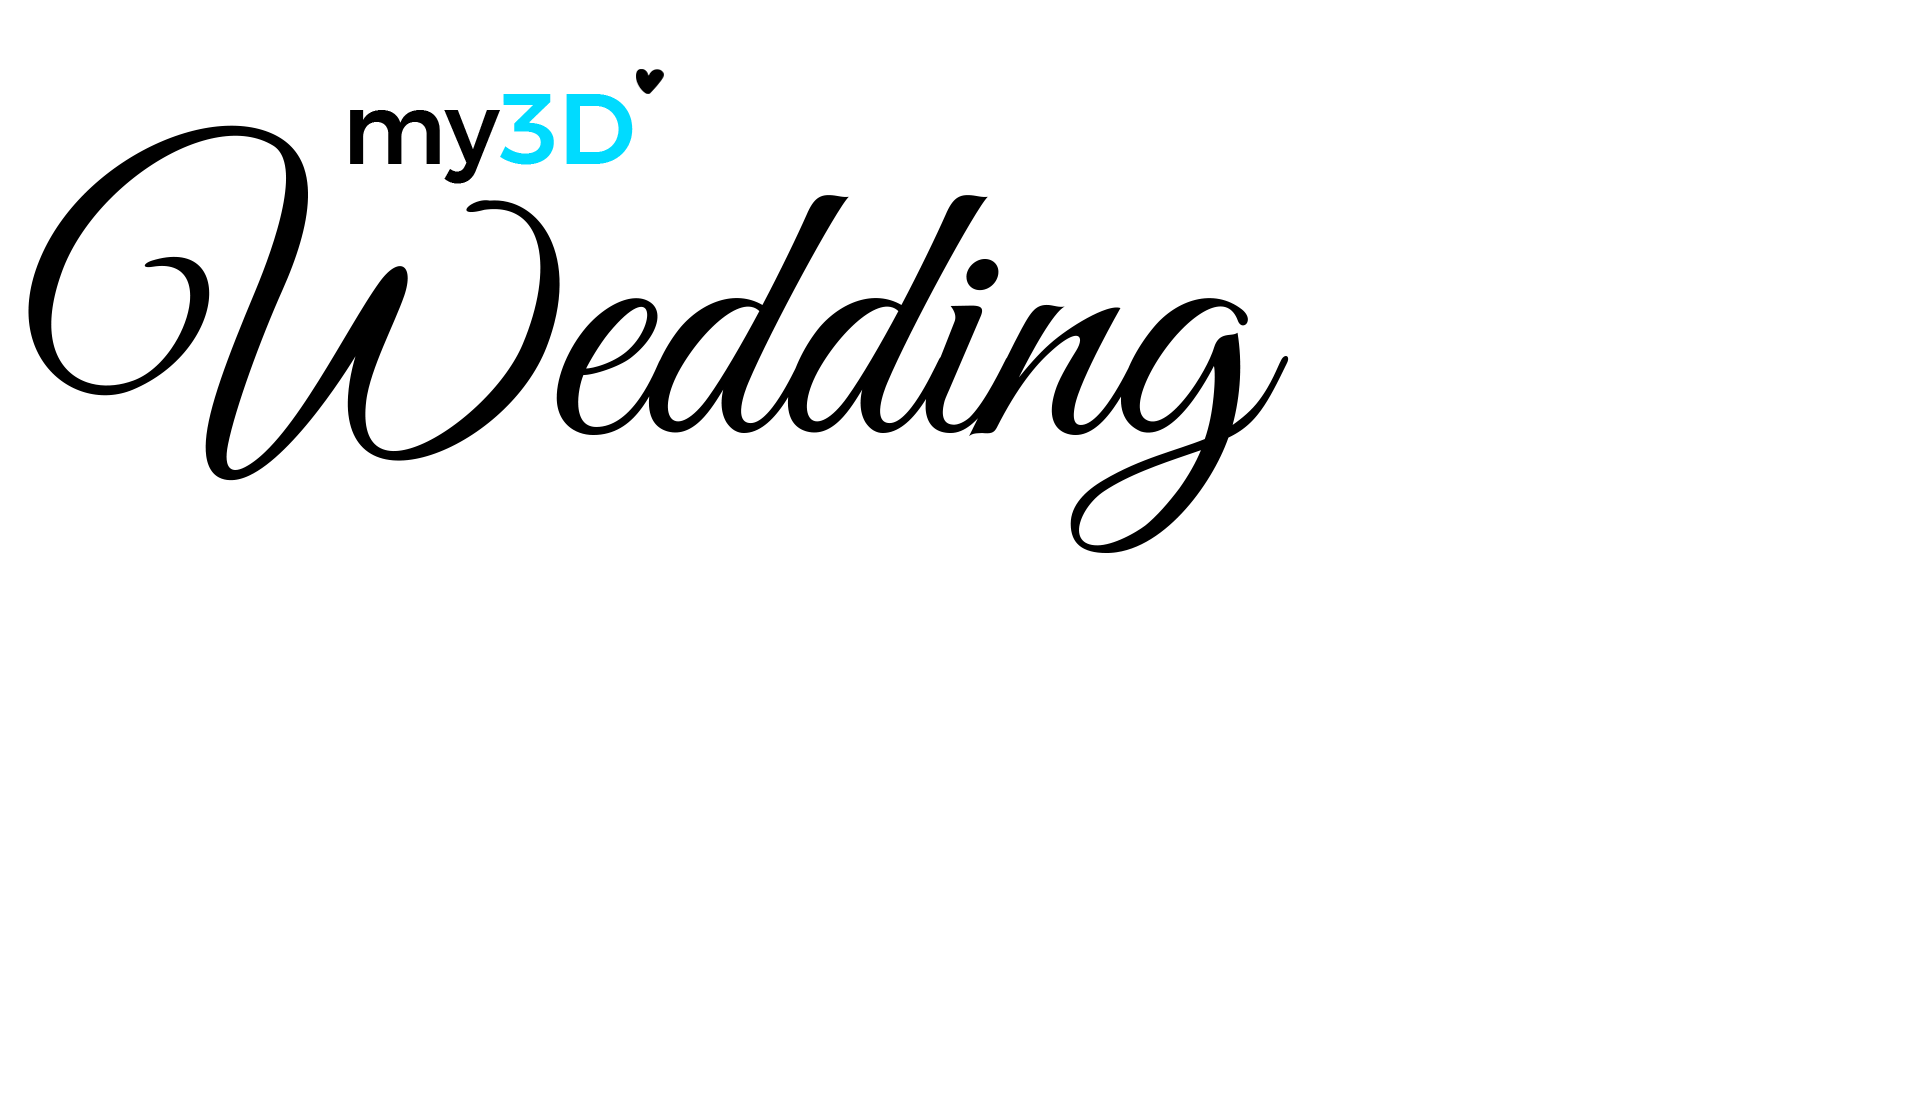 Wedding Text Png , (+) Pictures.